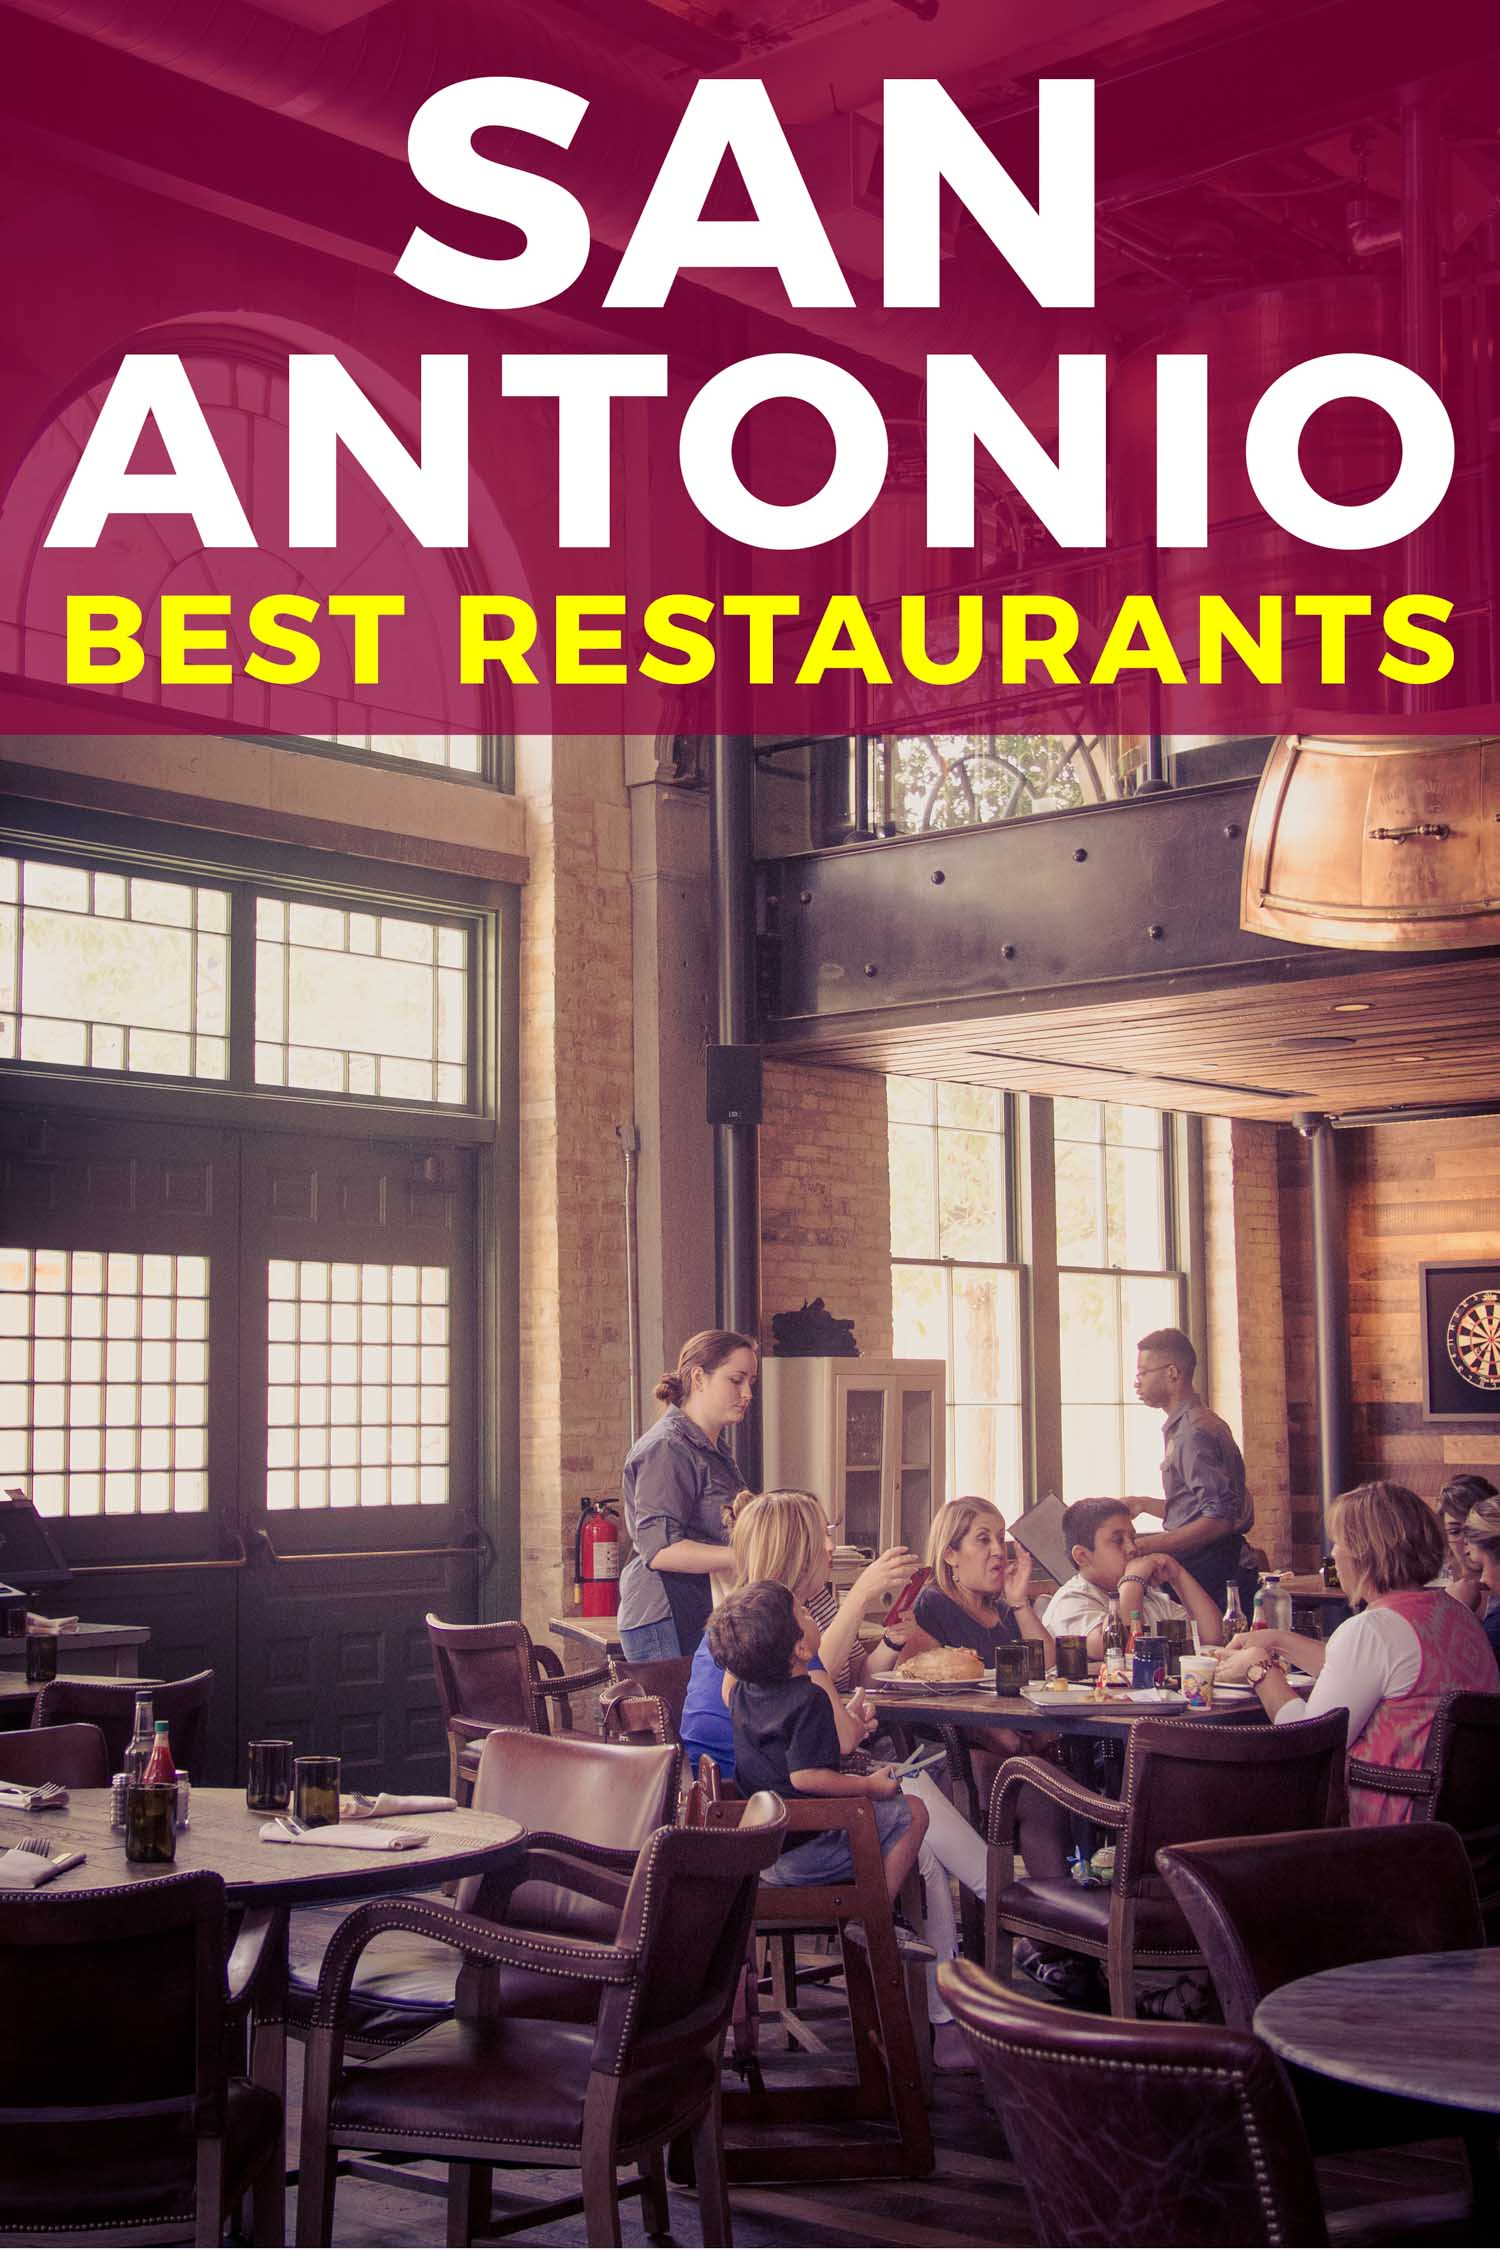 One of the best restaurants in San Antonio, interior with people dining